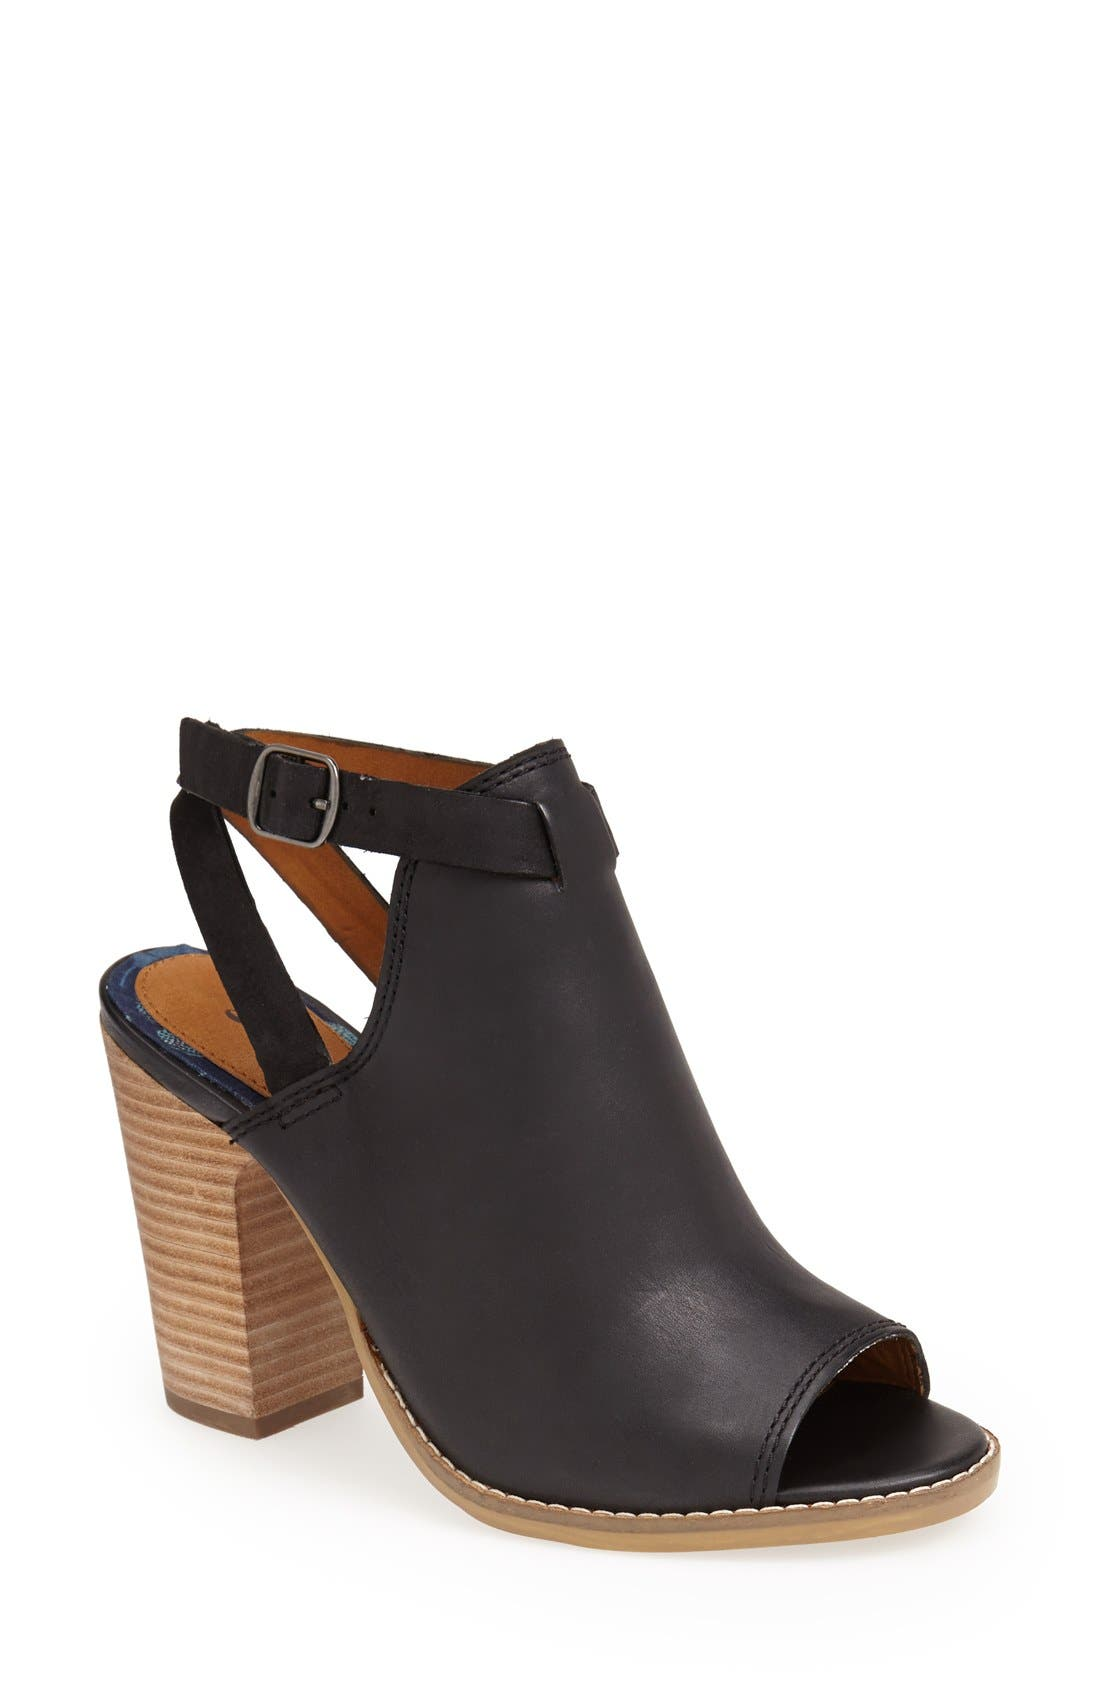 Alternate Image 1 Selected - Lucky Brand 'Lubov' Cutout Bootie (Women)